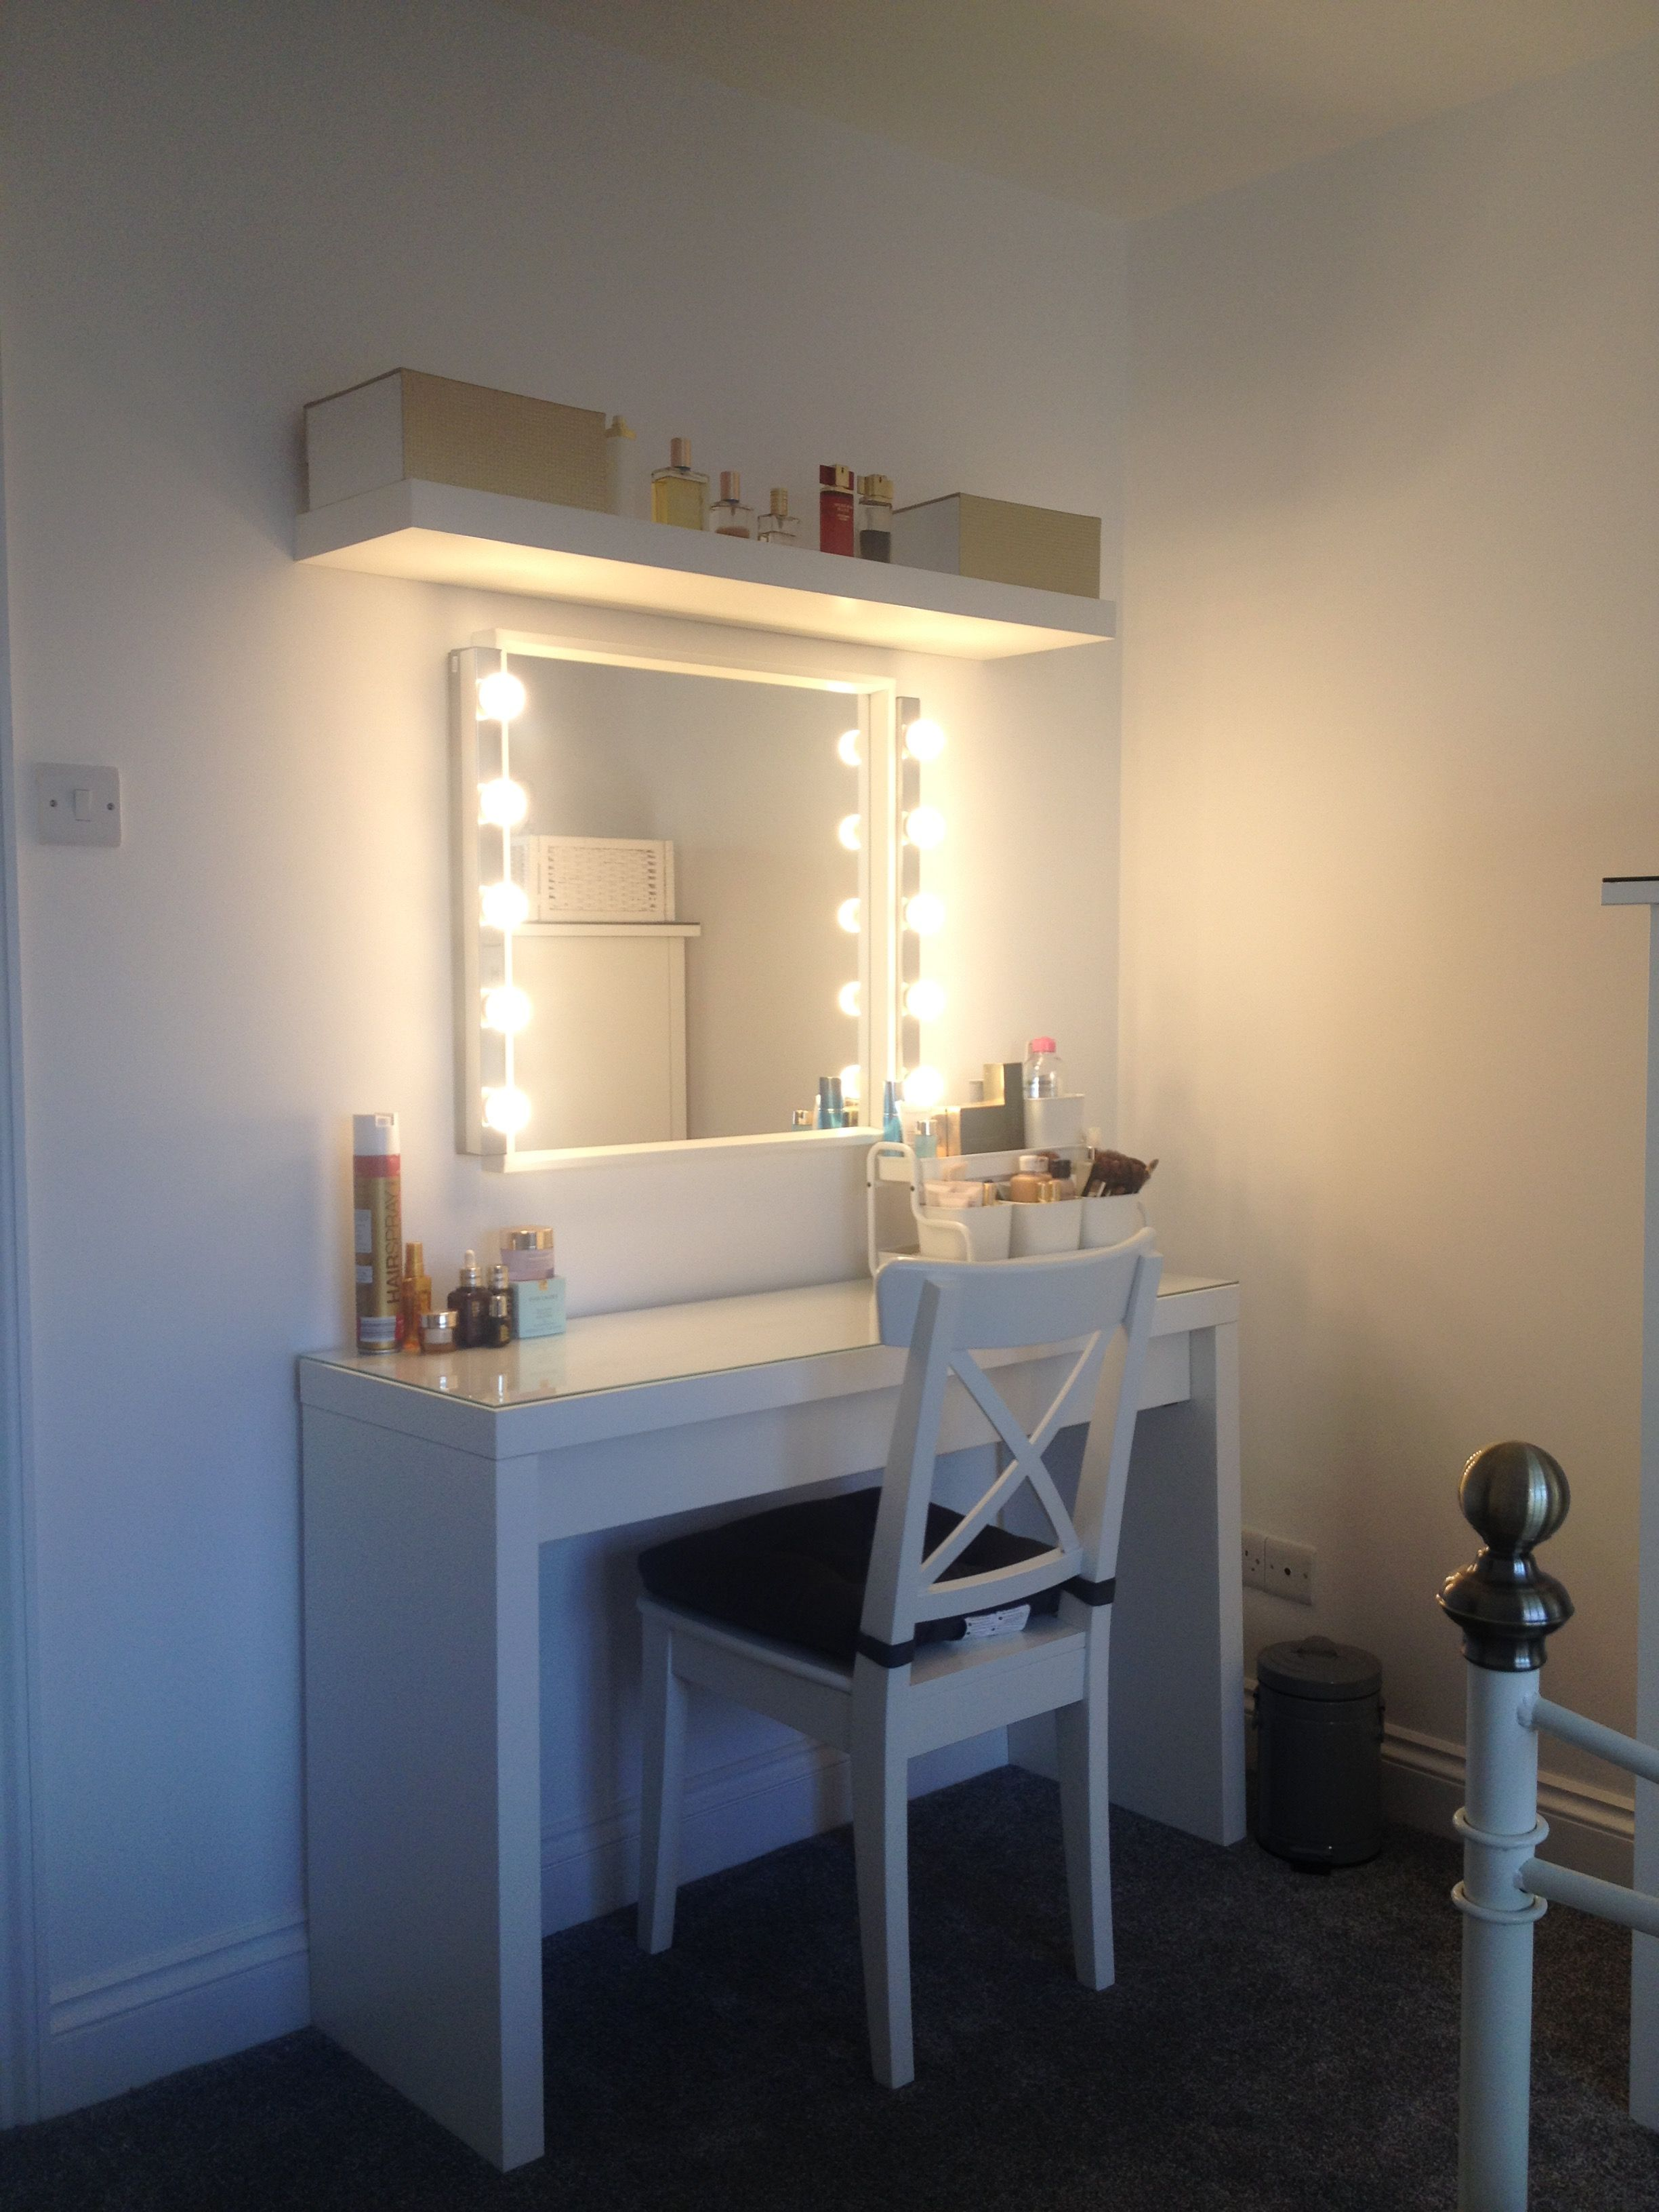 Kaptafel Spiegel Met Verlichting Ikea.Ikea Malm Dressing Table Love My New Make Up Station